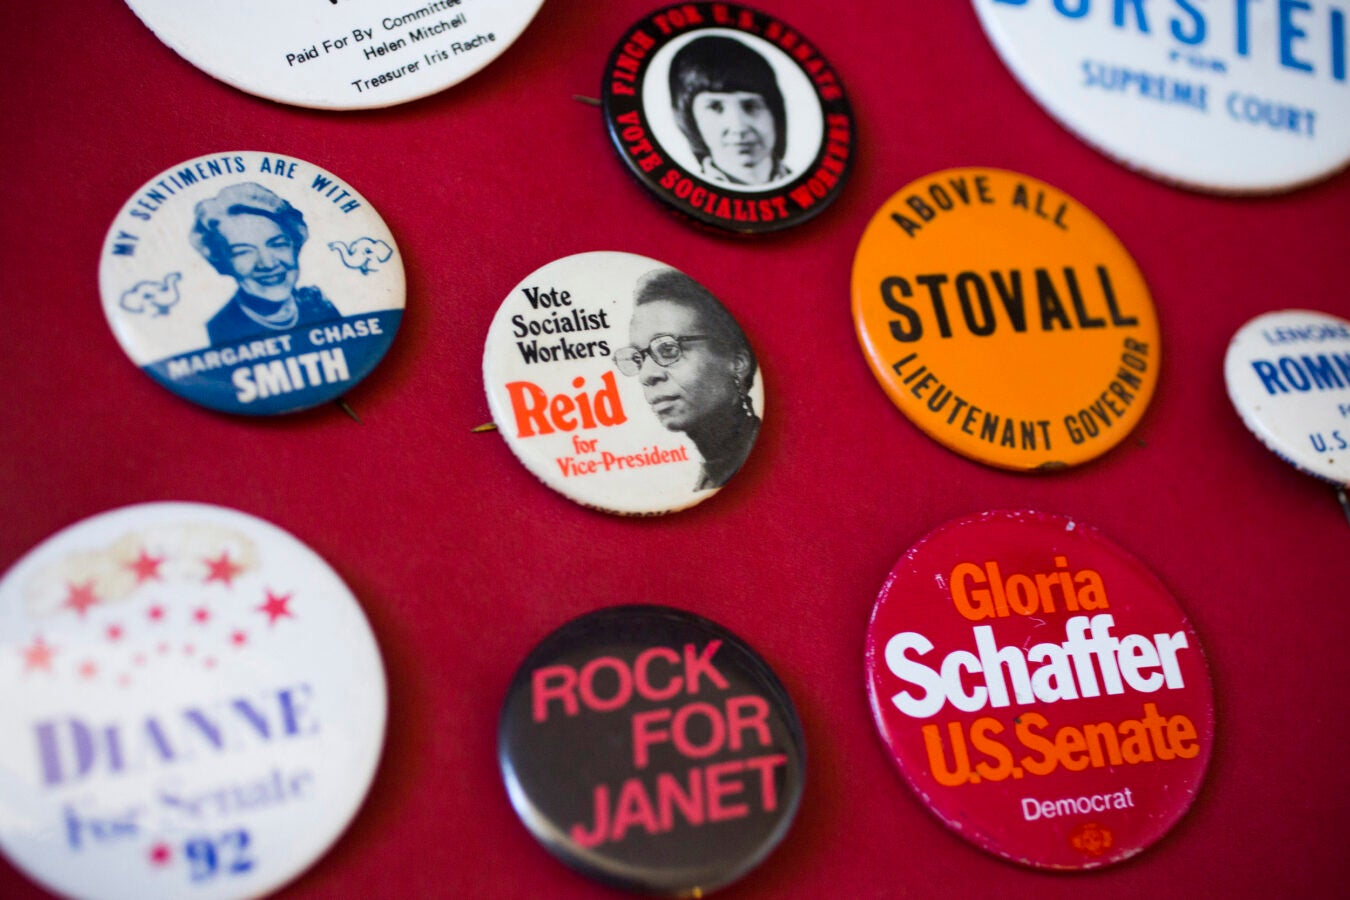 Buttons representing female candidates from conservative to socialist parties.